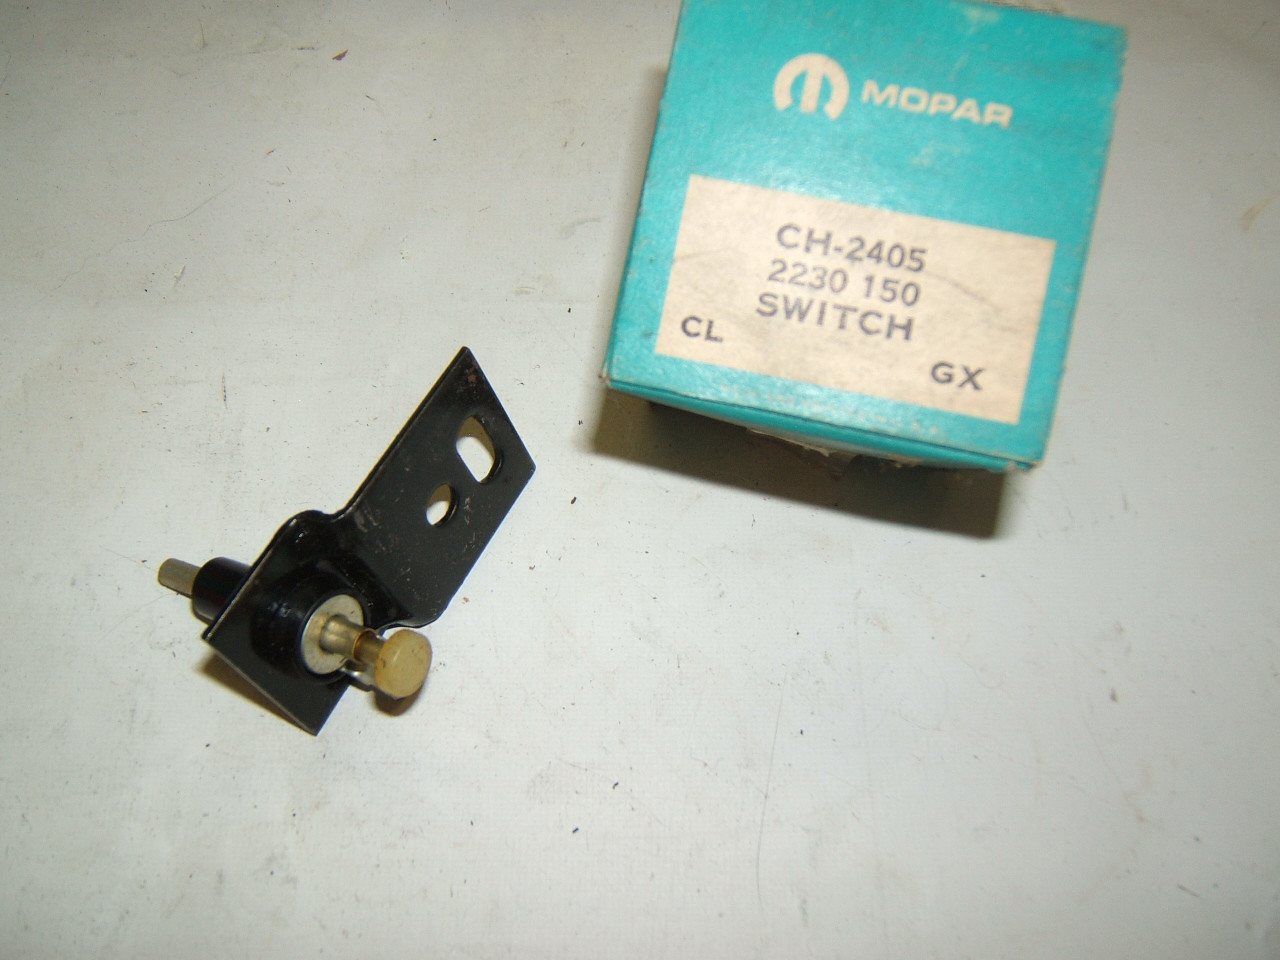 1962 - 69 Dodge truck stoplamp switch nos 2230150 (a ch2405)